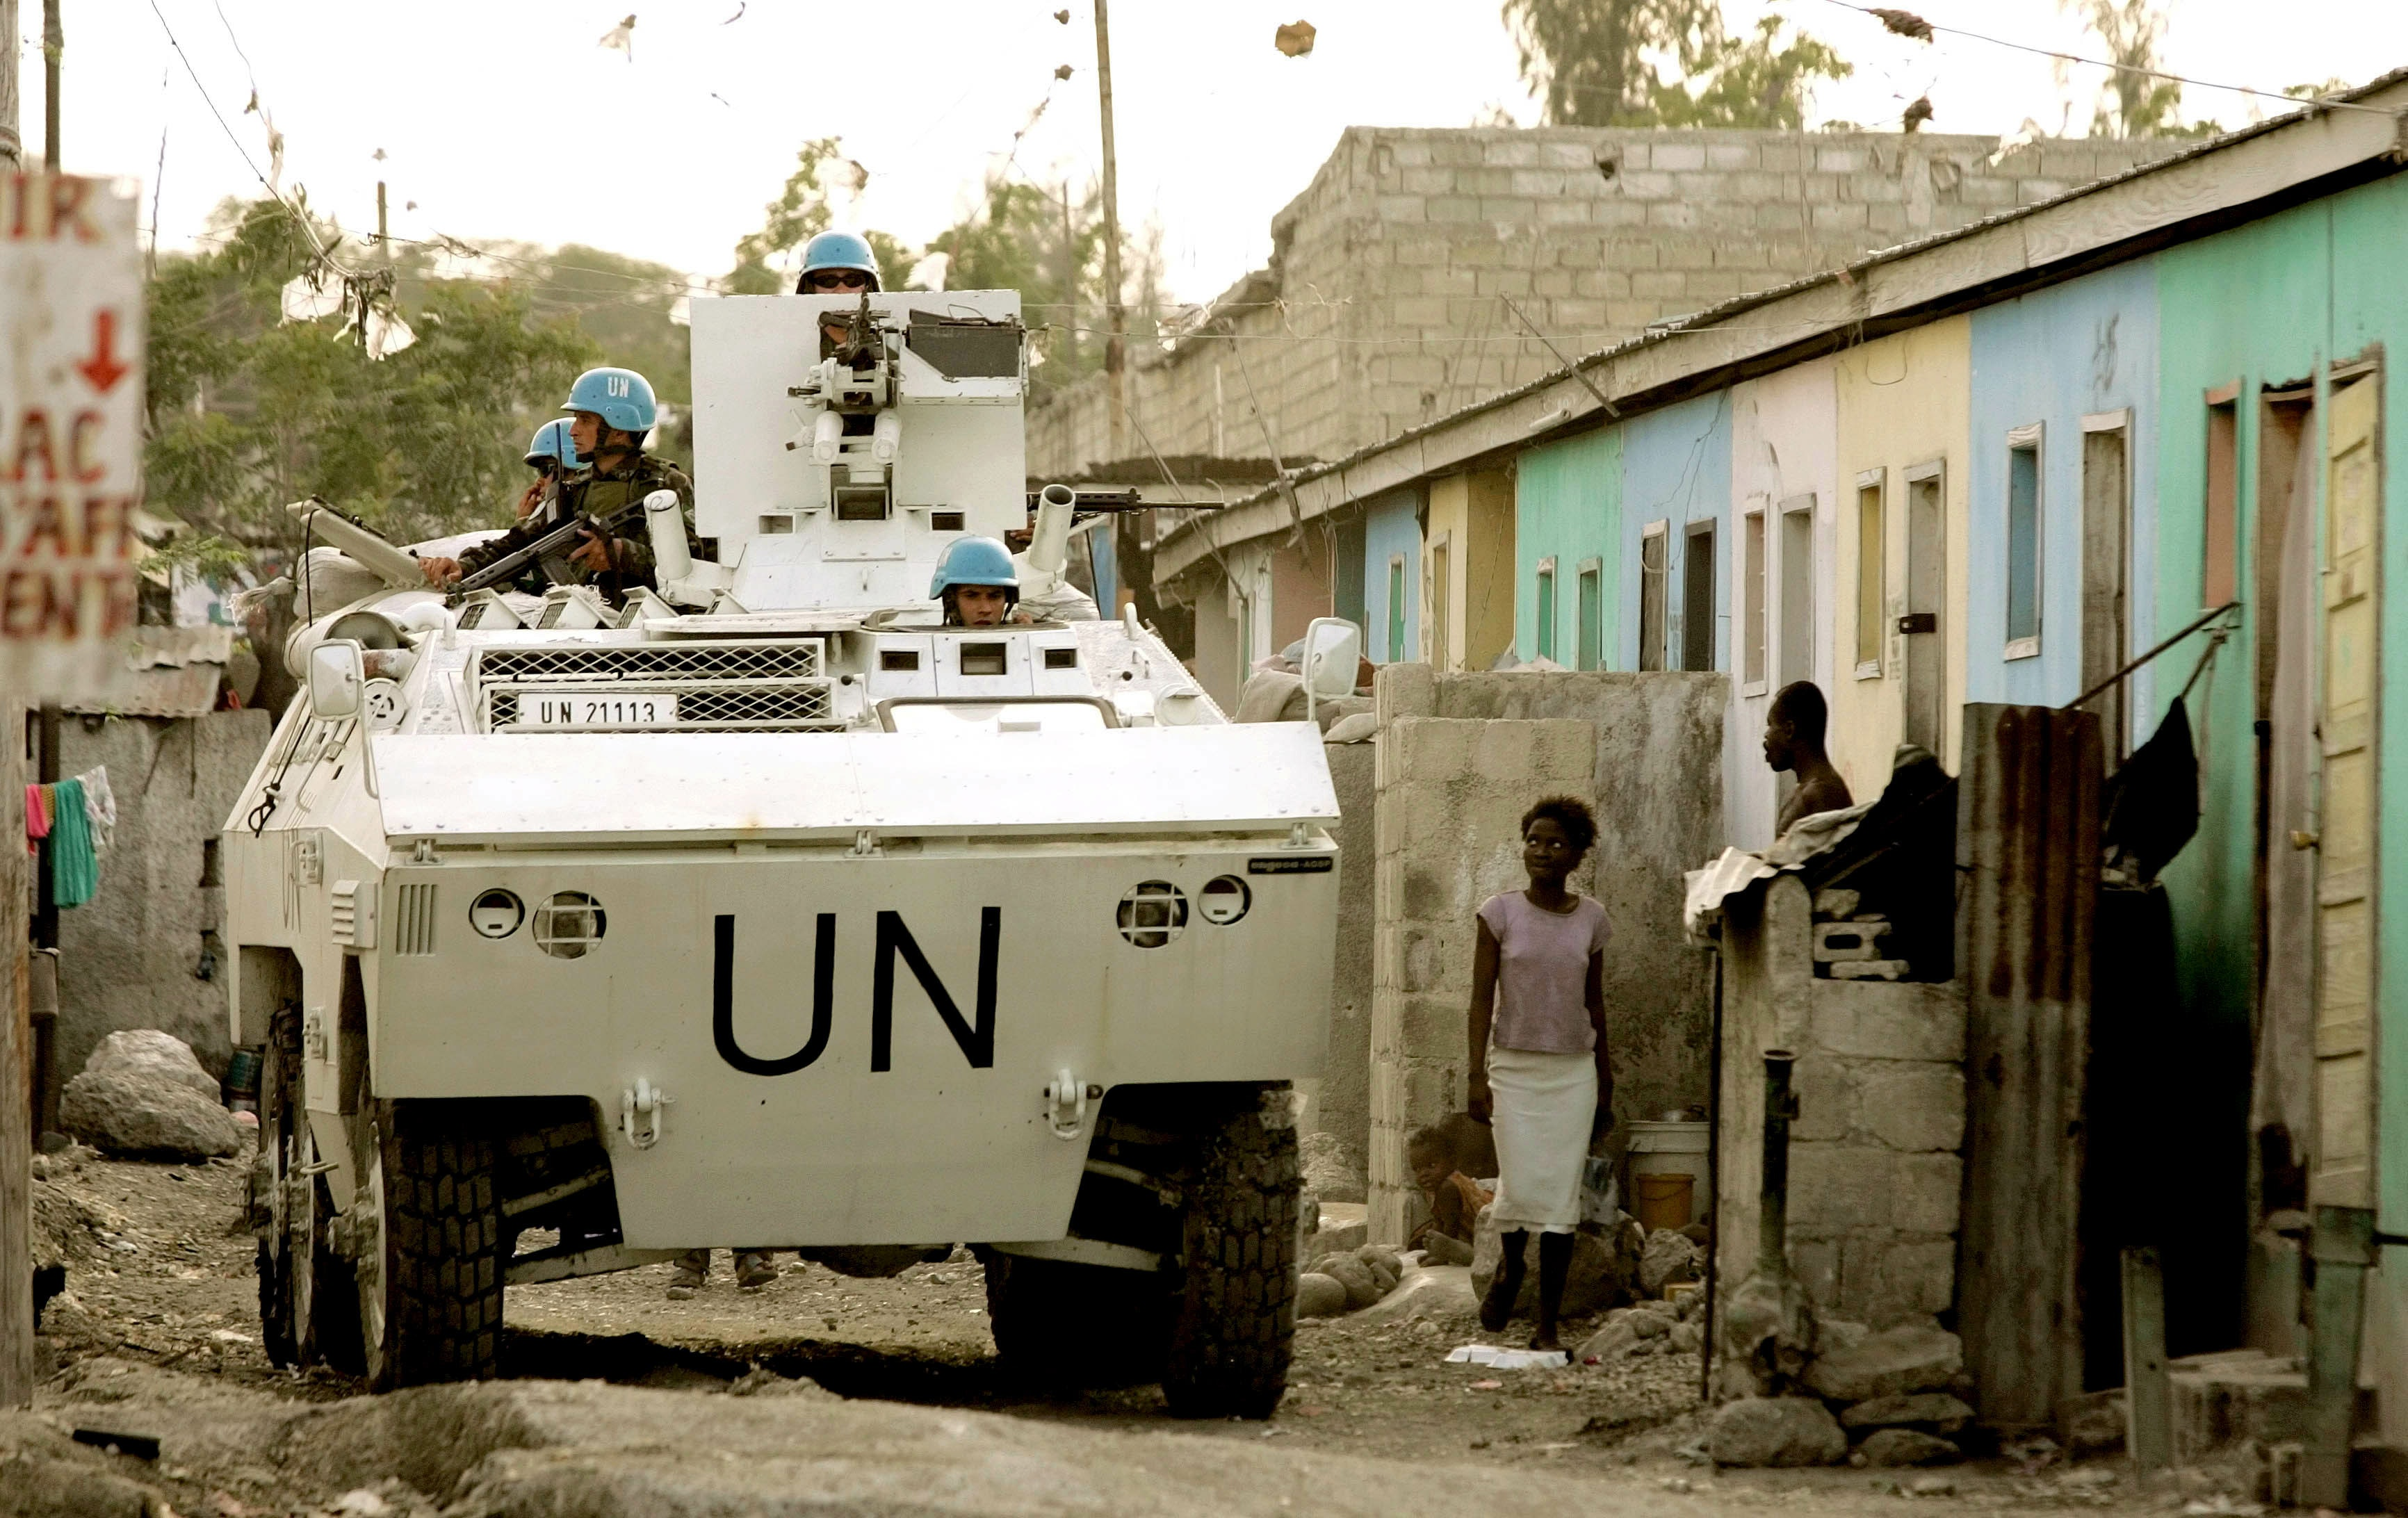 Sent to Haiti to keep the peace, departing UN troops leave a damaged nation in their wake